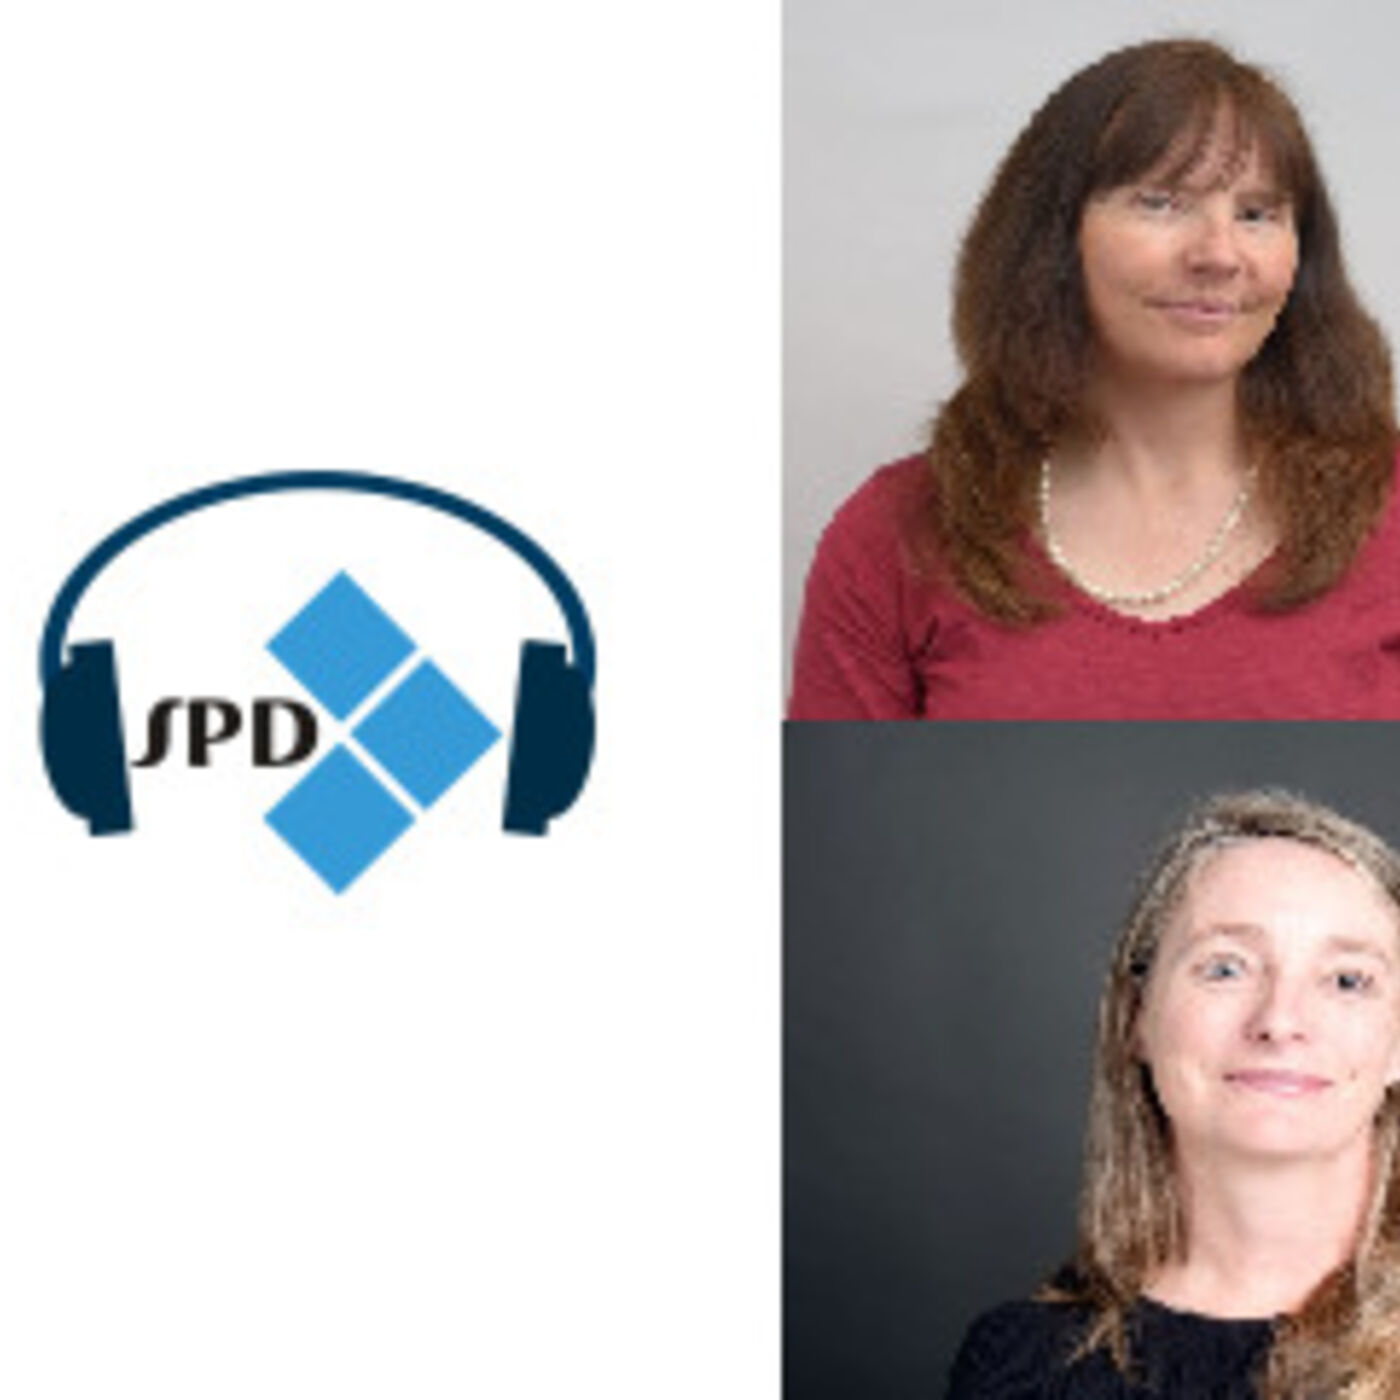 ATA SPD Podcast, An Interview with Eve Bodeux and Corinne McKay